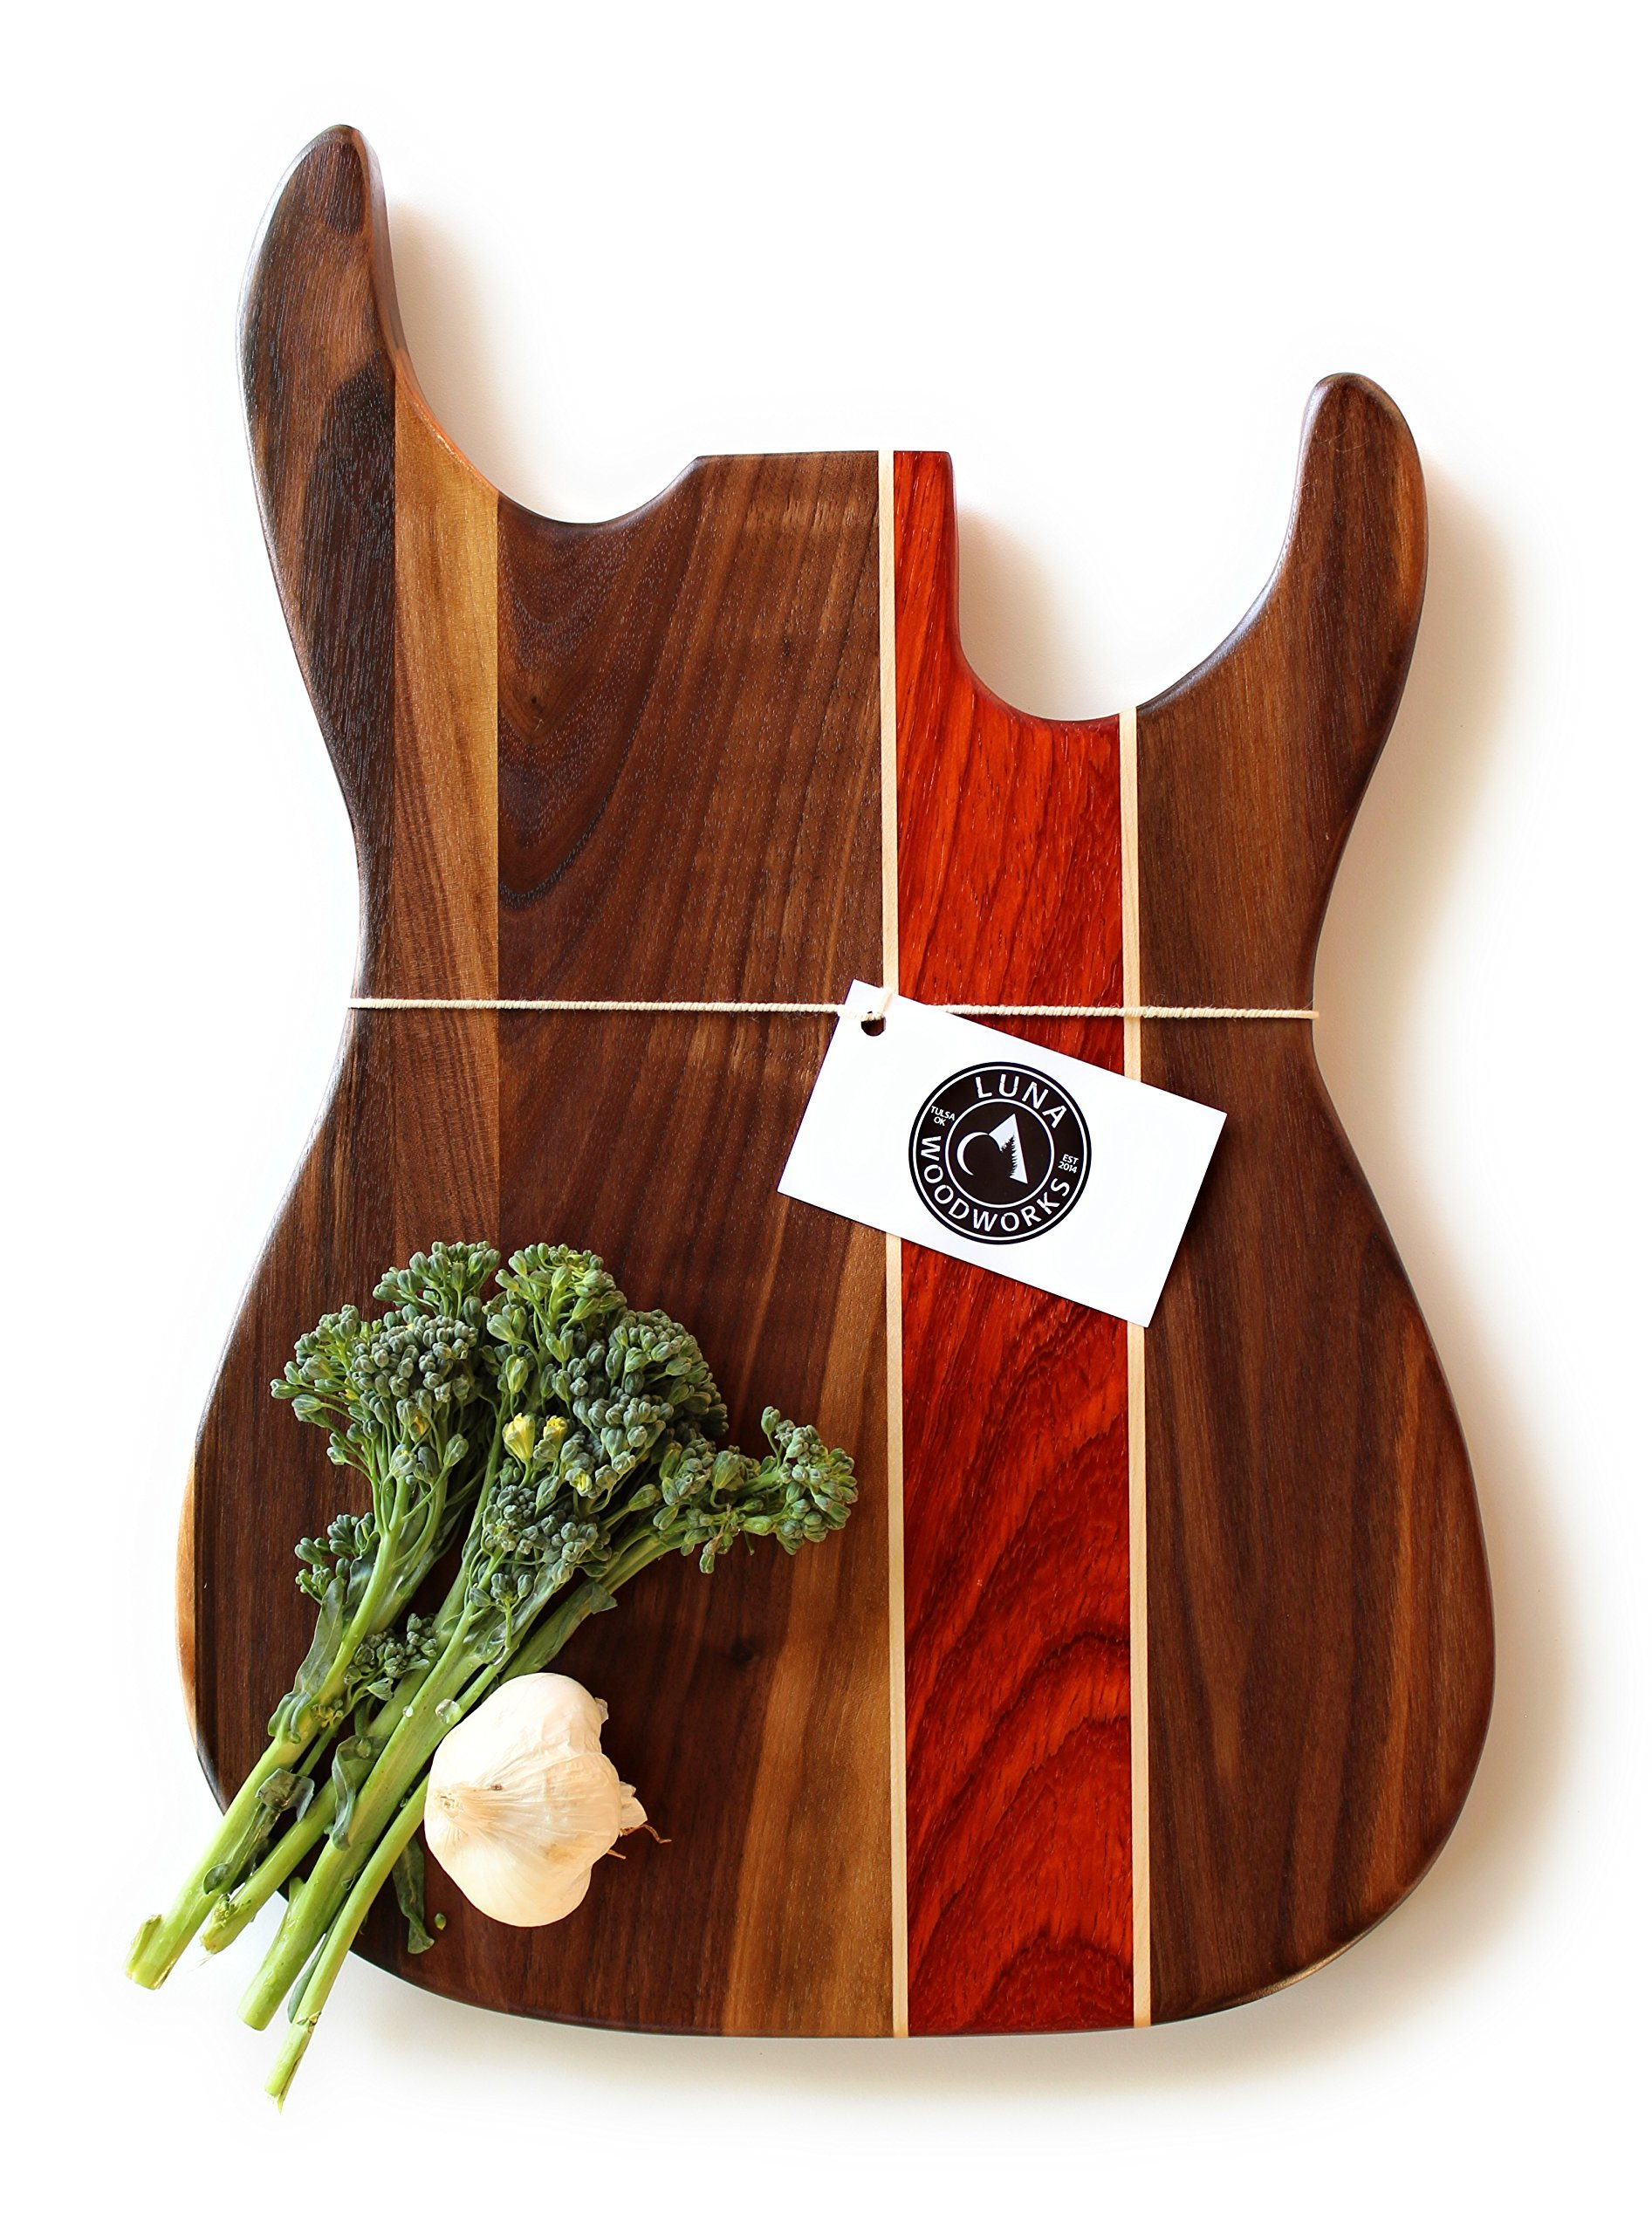 Guitar Cutting Board Engraved Personalized Wood Wedding Anniversary Gift Custom Wooden Sign Rock and Roll Musician Wall Art Music Art Chef Serving Tray Cheese Board Kitchen Decor Bass Handmade in USA